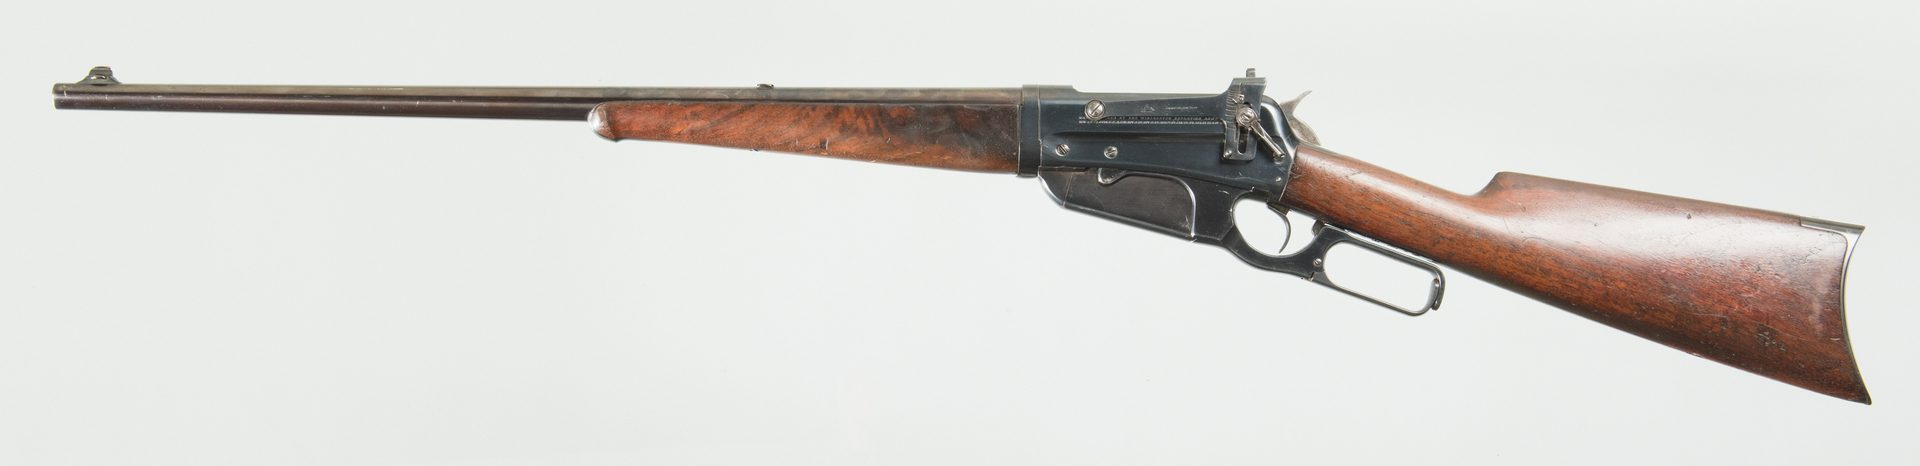 Lot 818: Winchester Model 1895, 44 Win. Lever Action Rifle